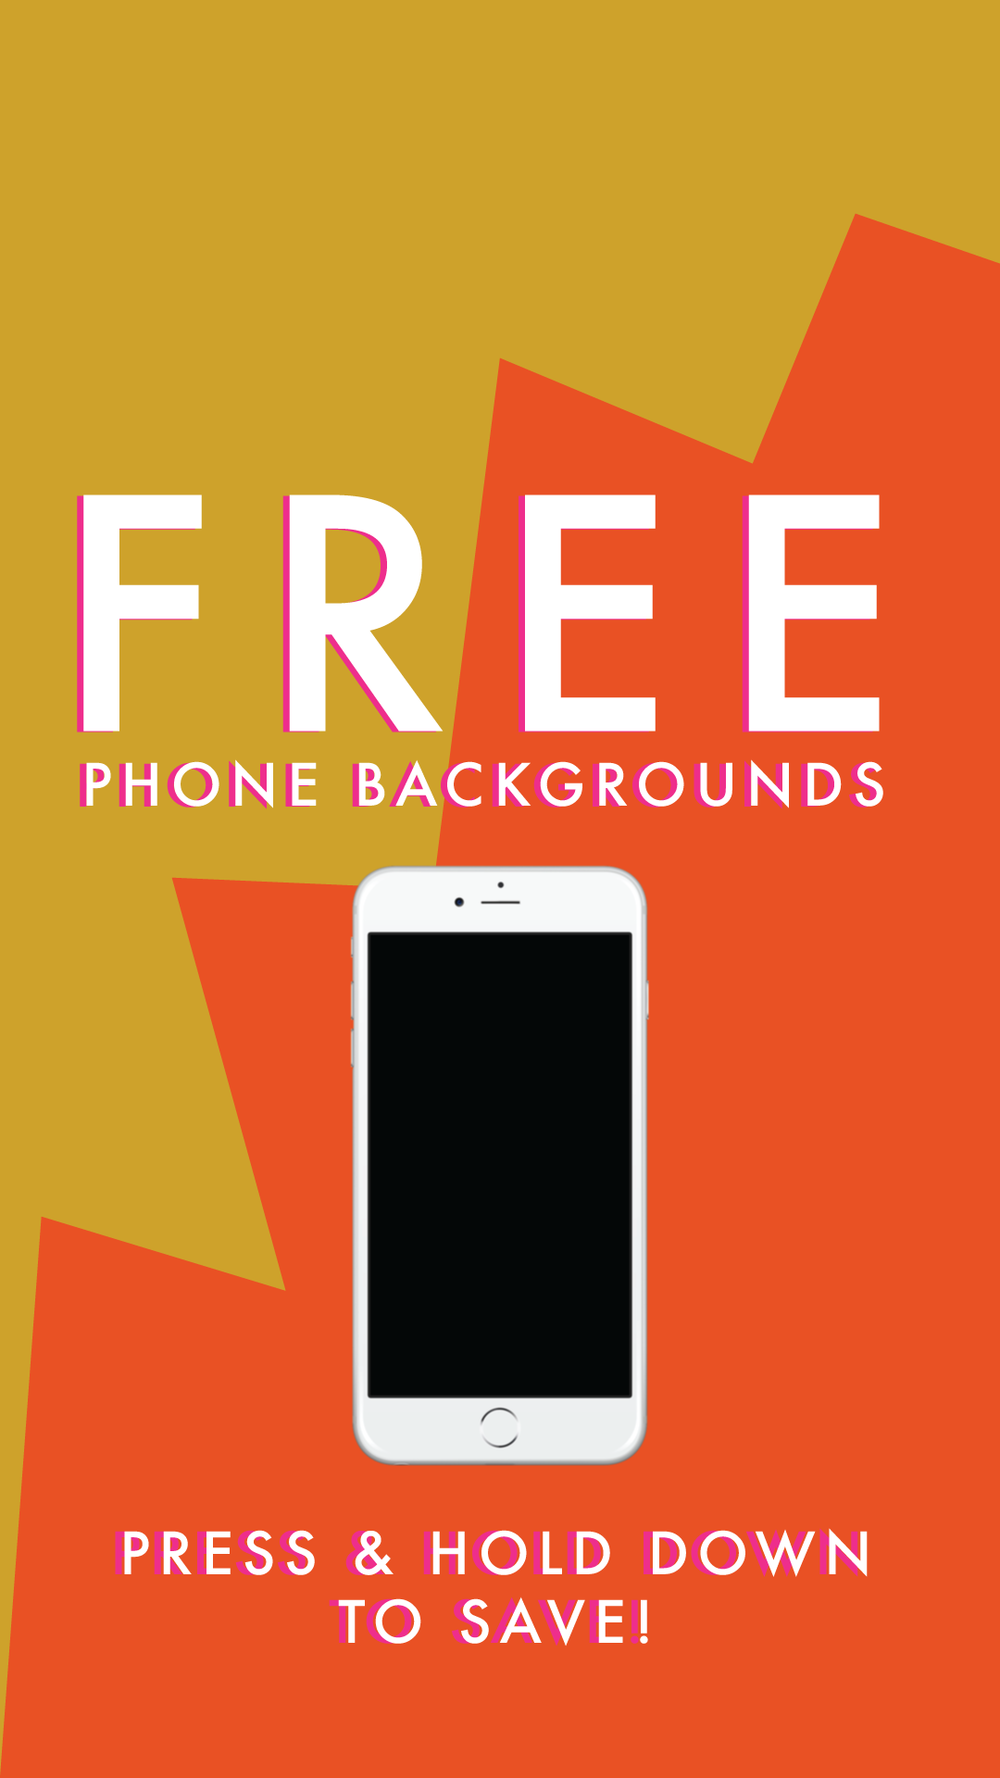 FREE Phone Backgrounds | Jordan Hefler